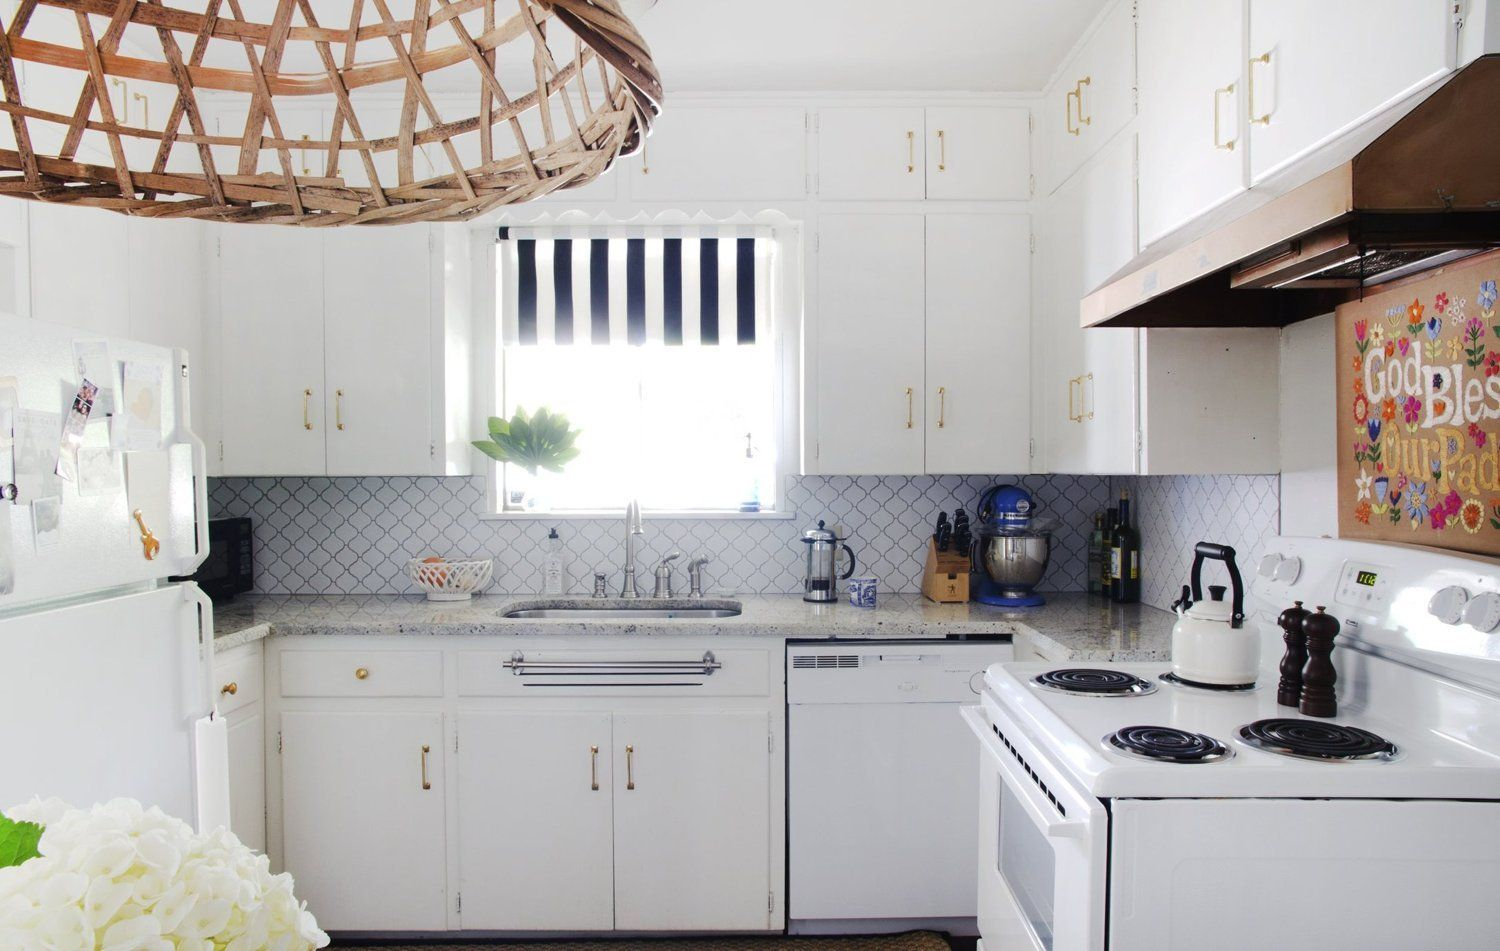 The Tiny Upgrade For A More Stylish Rental Kitchen Rental Kitchen Kitchen Trends Apartment Kitchen